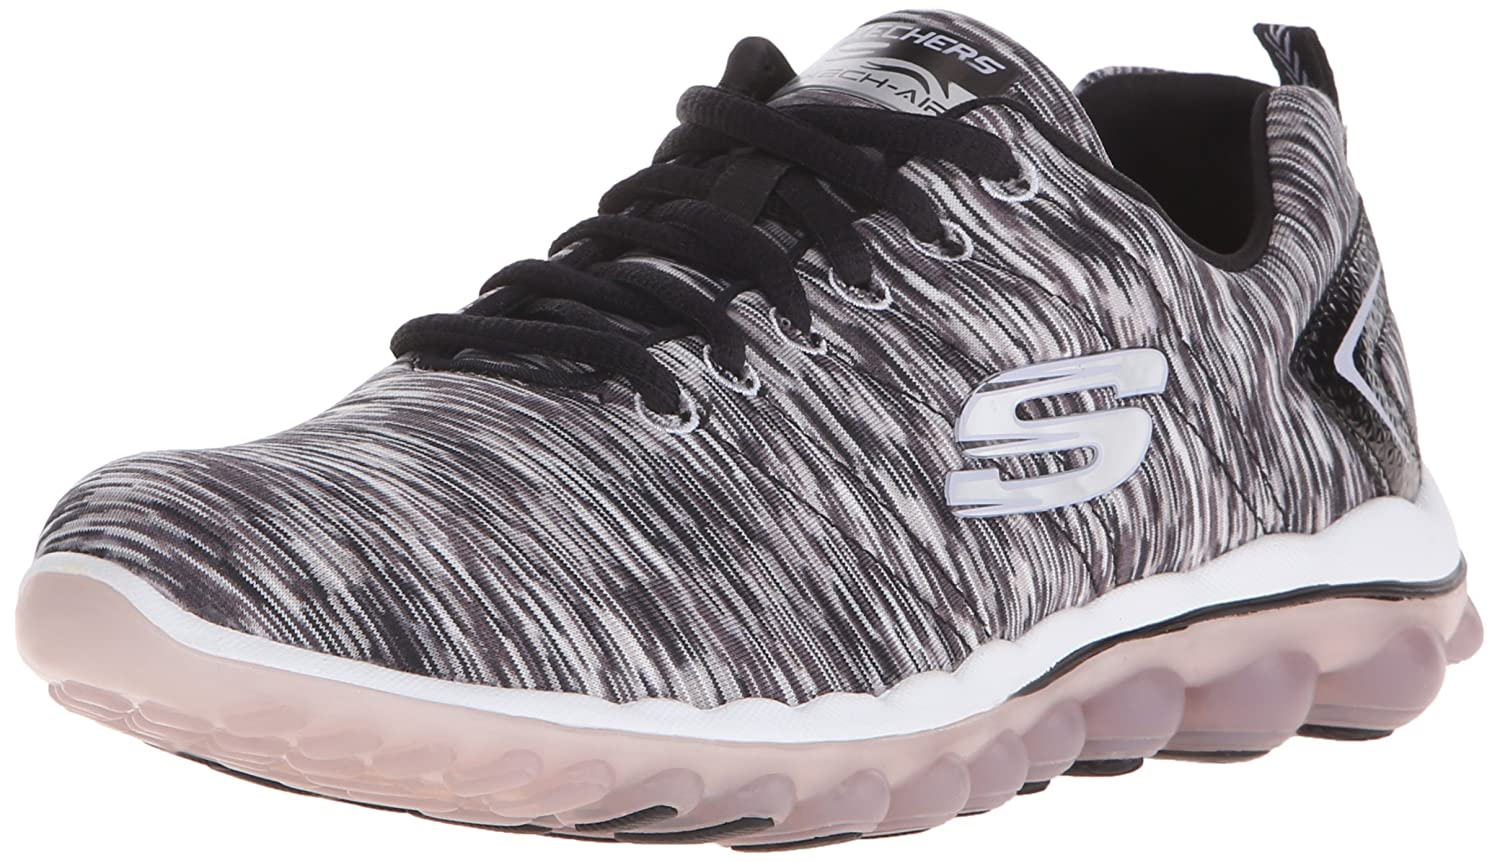 Skechers Sport Women's Skech Air Run High Fashion Sneaker B013BLT2FI 10 B(M) US|Black/White